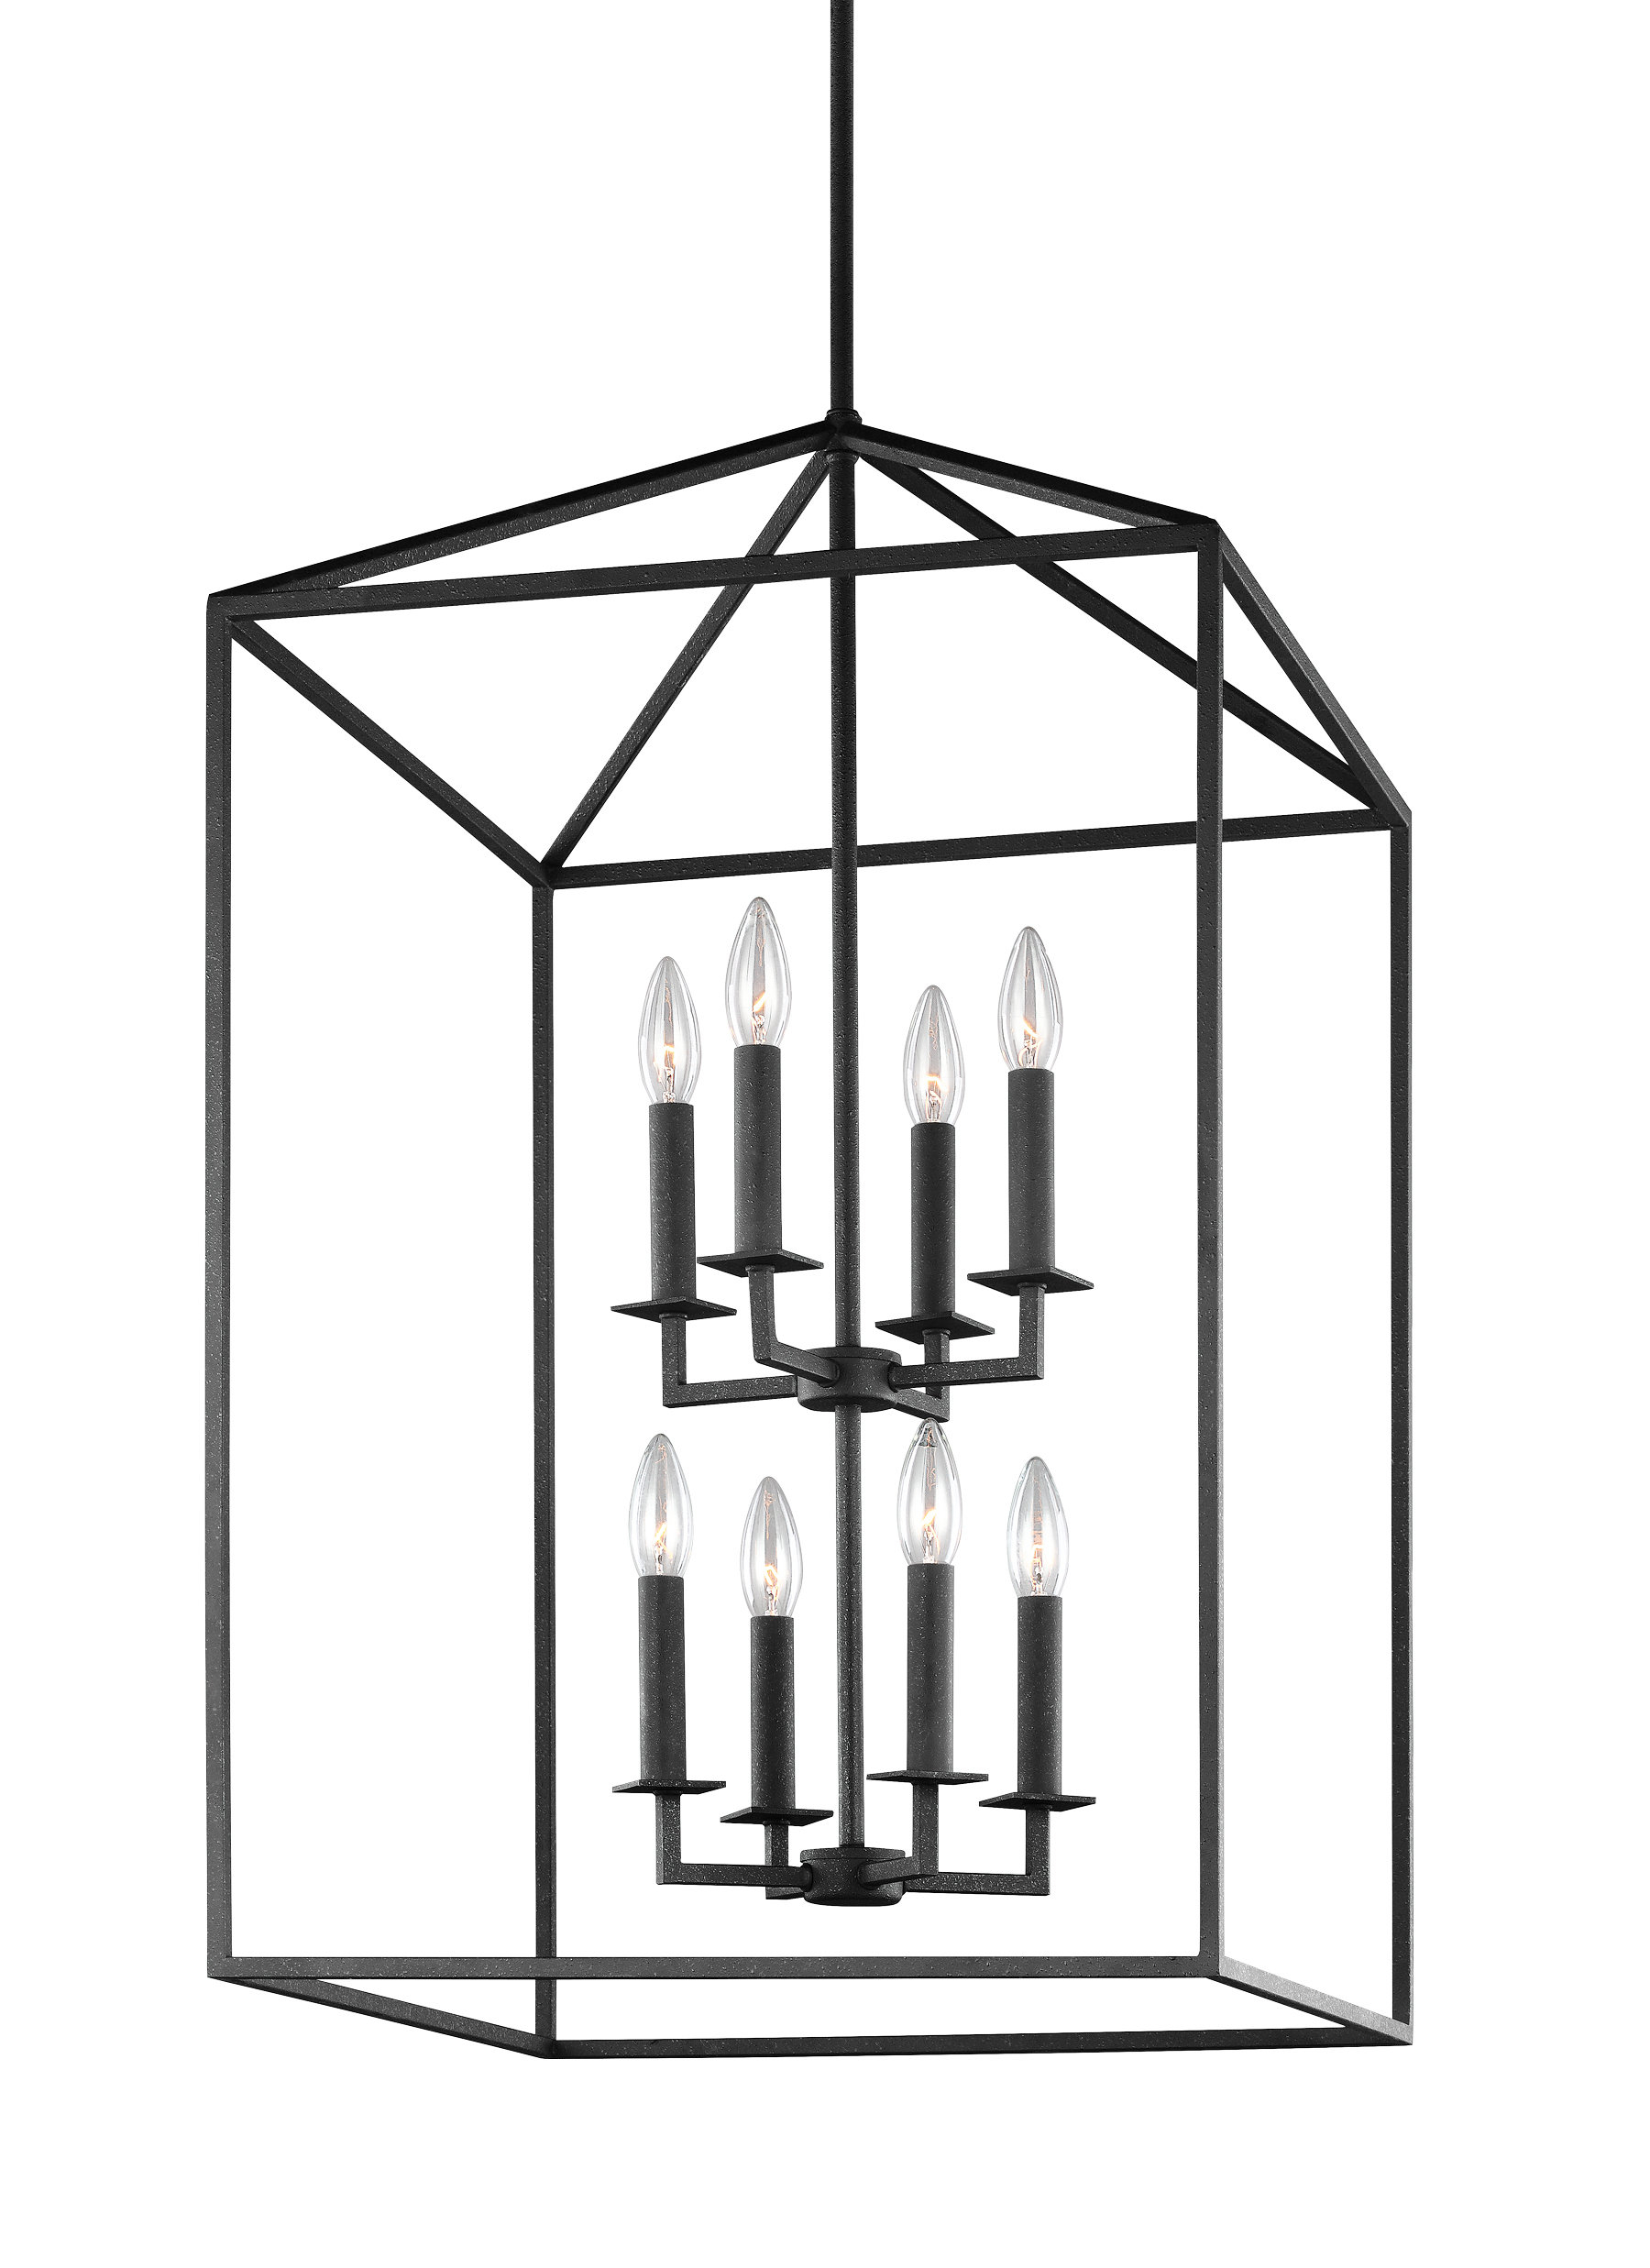 Carmen 8 Light Lantern Tiered Pendants Intended For Most Up To Date Odie 8 Light Lantern Tiered Pendant (View 5 of 20)